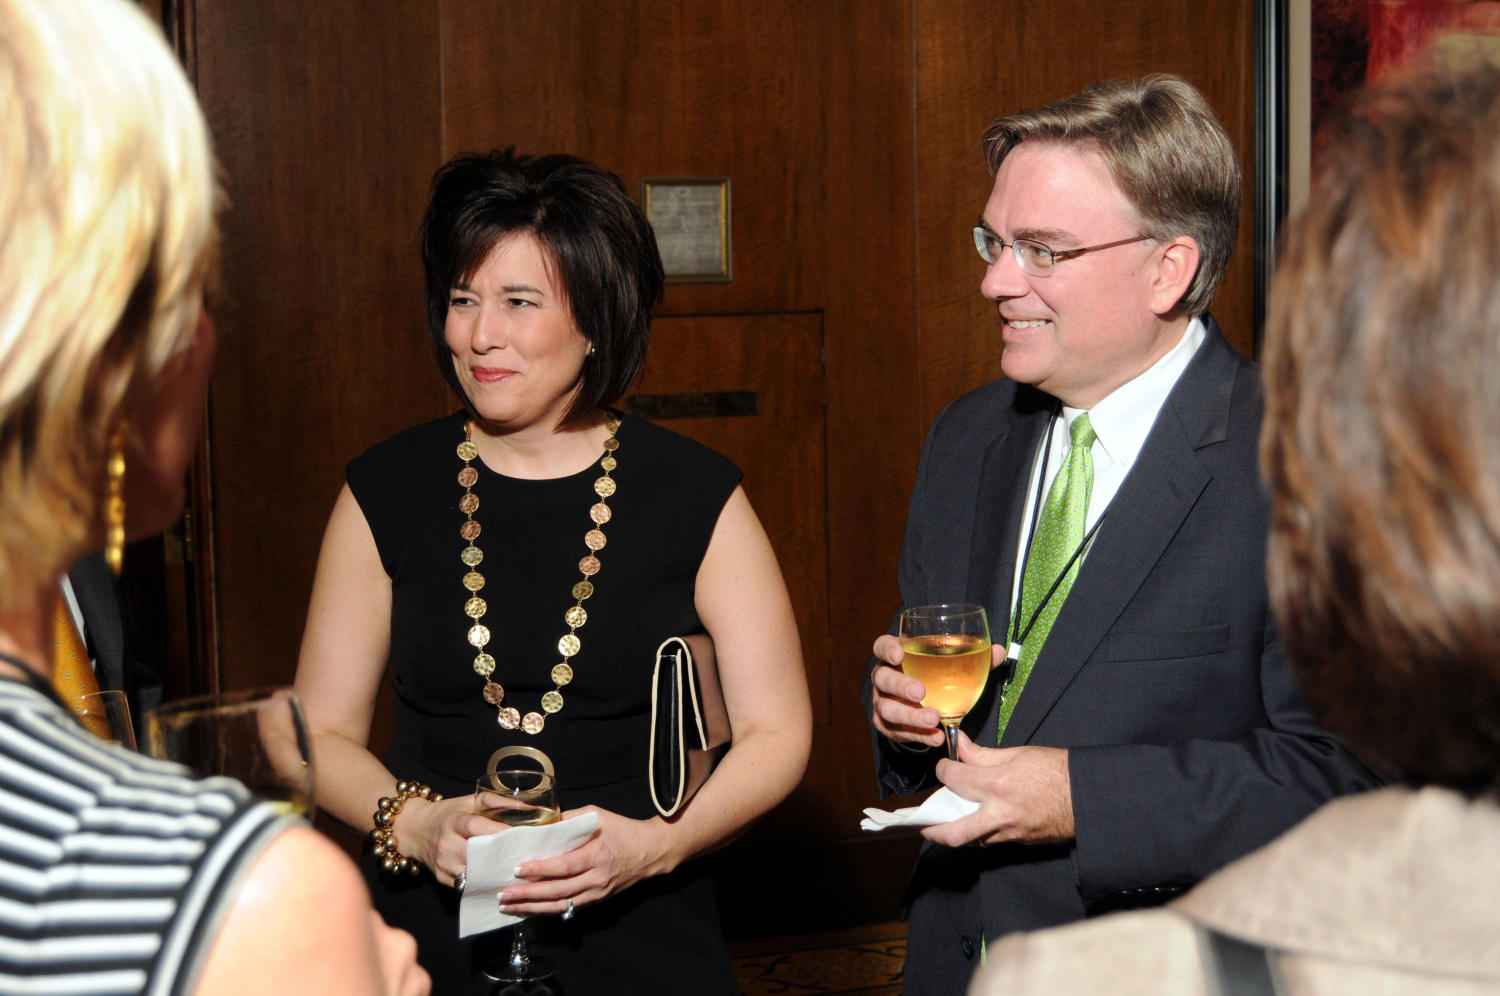 [Les Simpson and other guests at TDNA reception], Photograph of Les Simpson (center) and other unidentified guests conversing and drinking refreshments during a reception at the 2010 Texas Daily Newspaper Association annual meeting held in Houston, Texas.,